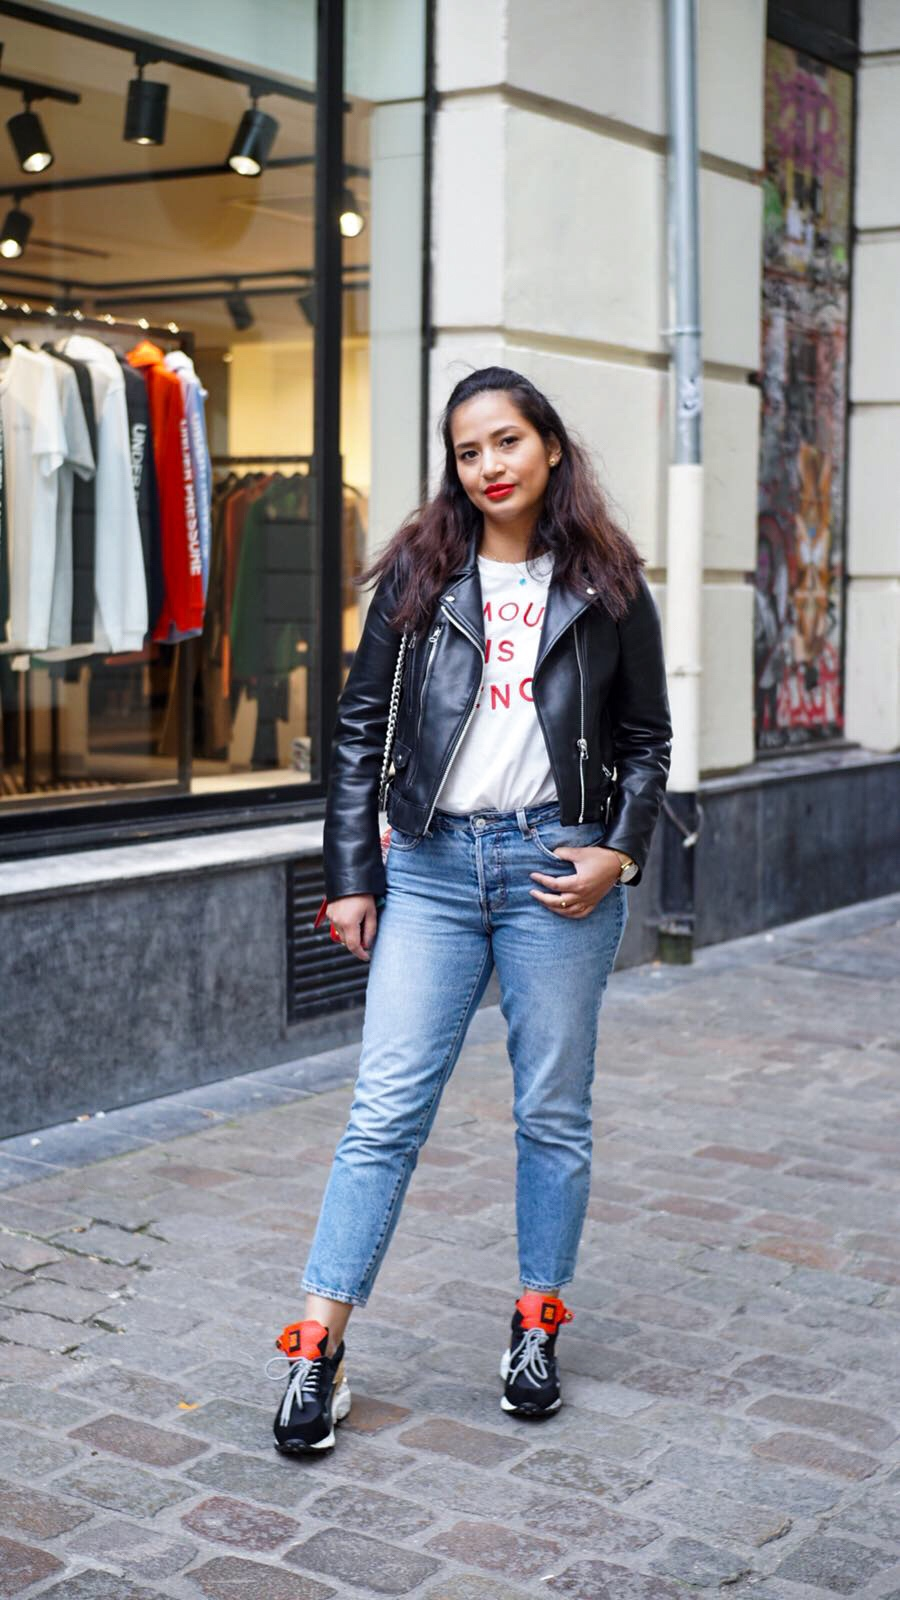 Veste biker - Zara | T-shirt - Un peu beaucoup | Jean - H&M | Sneakers - Chiko shoes